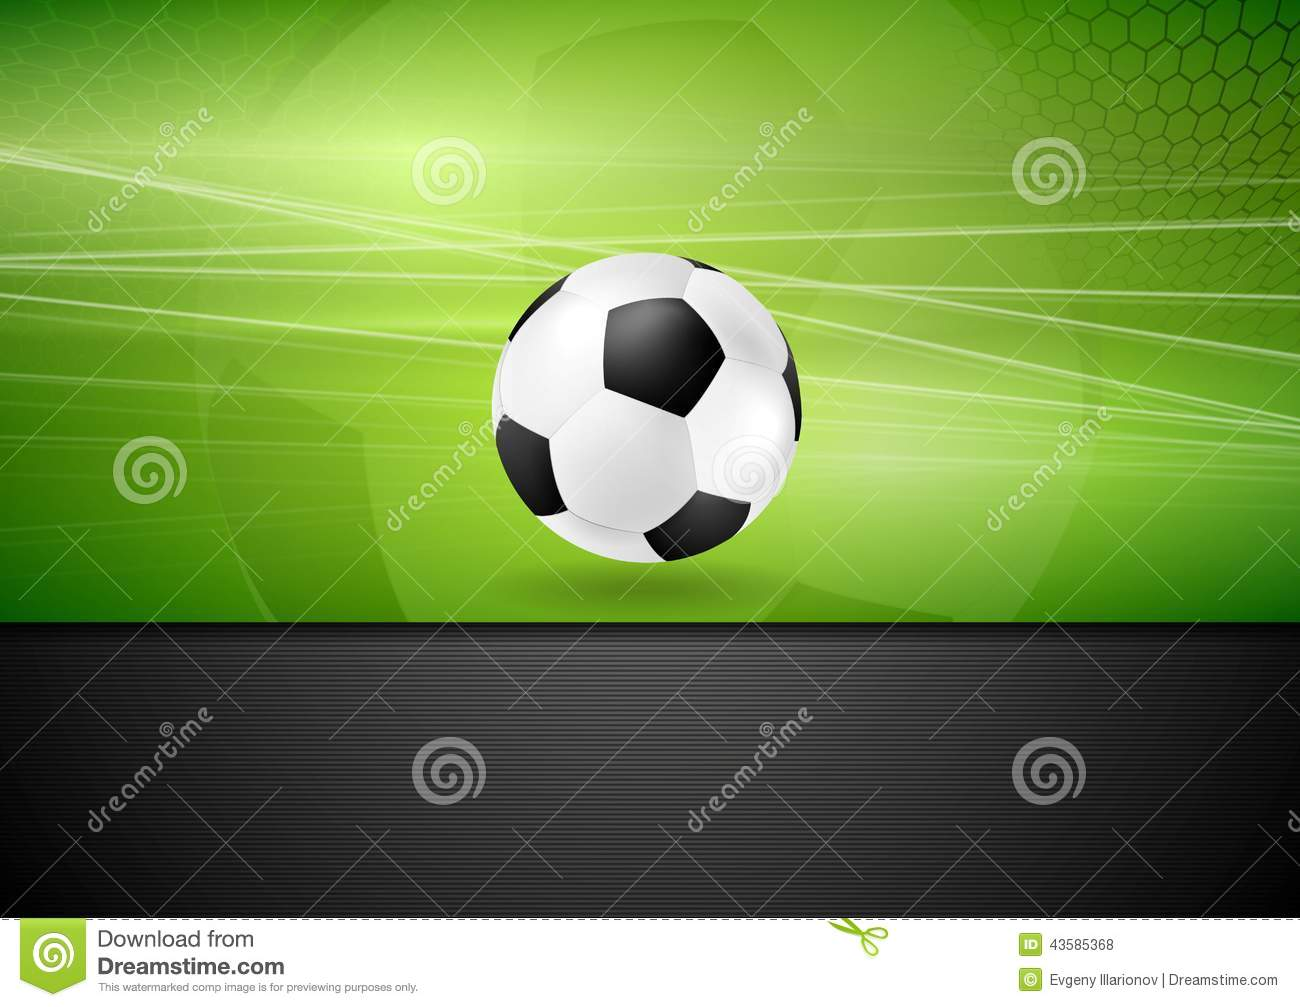 Soccer business card background template stock vector image abstract football background with soccer ball royalty free stock photos magicingreecefo Gallery